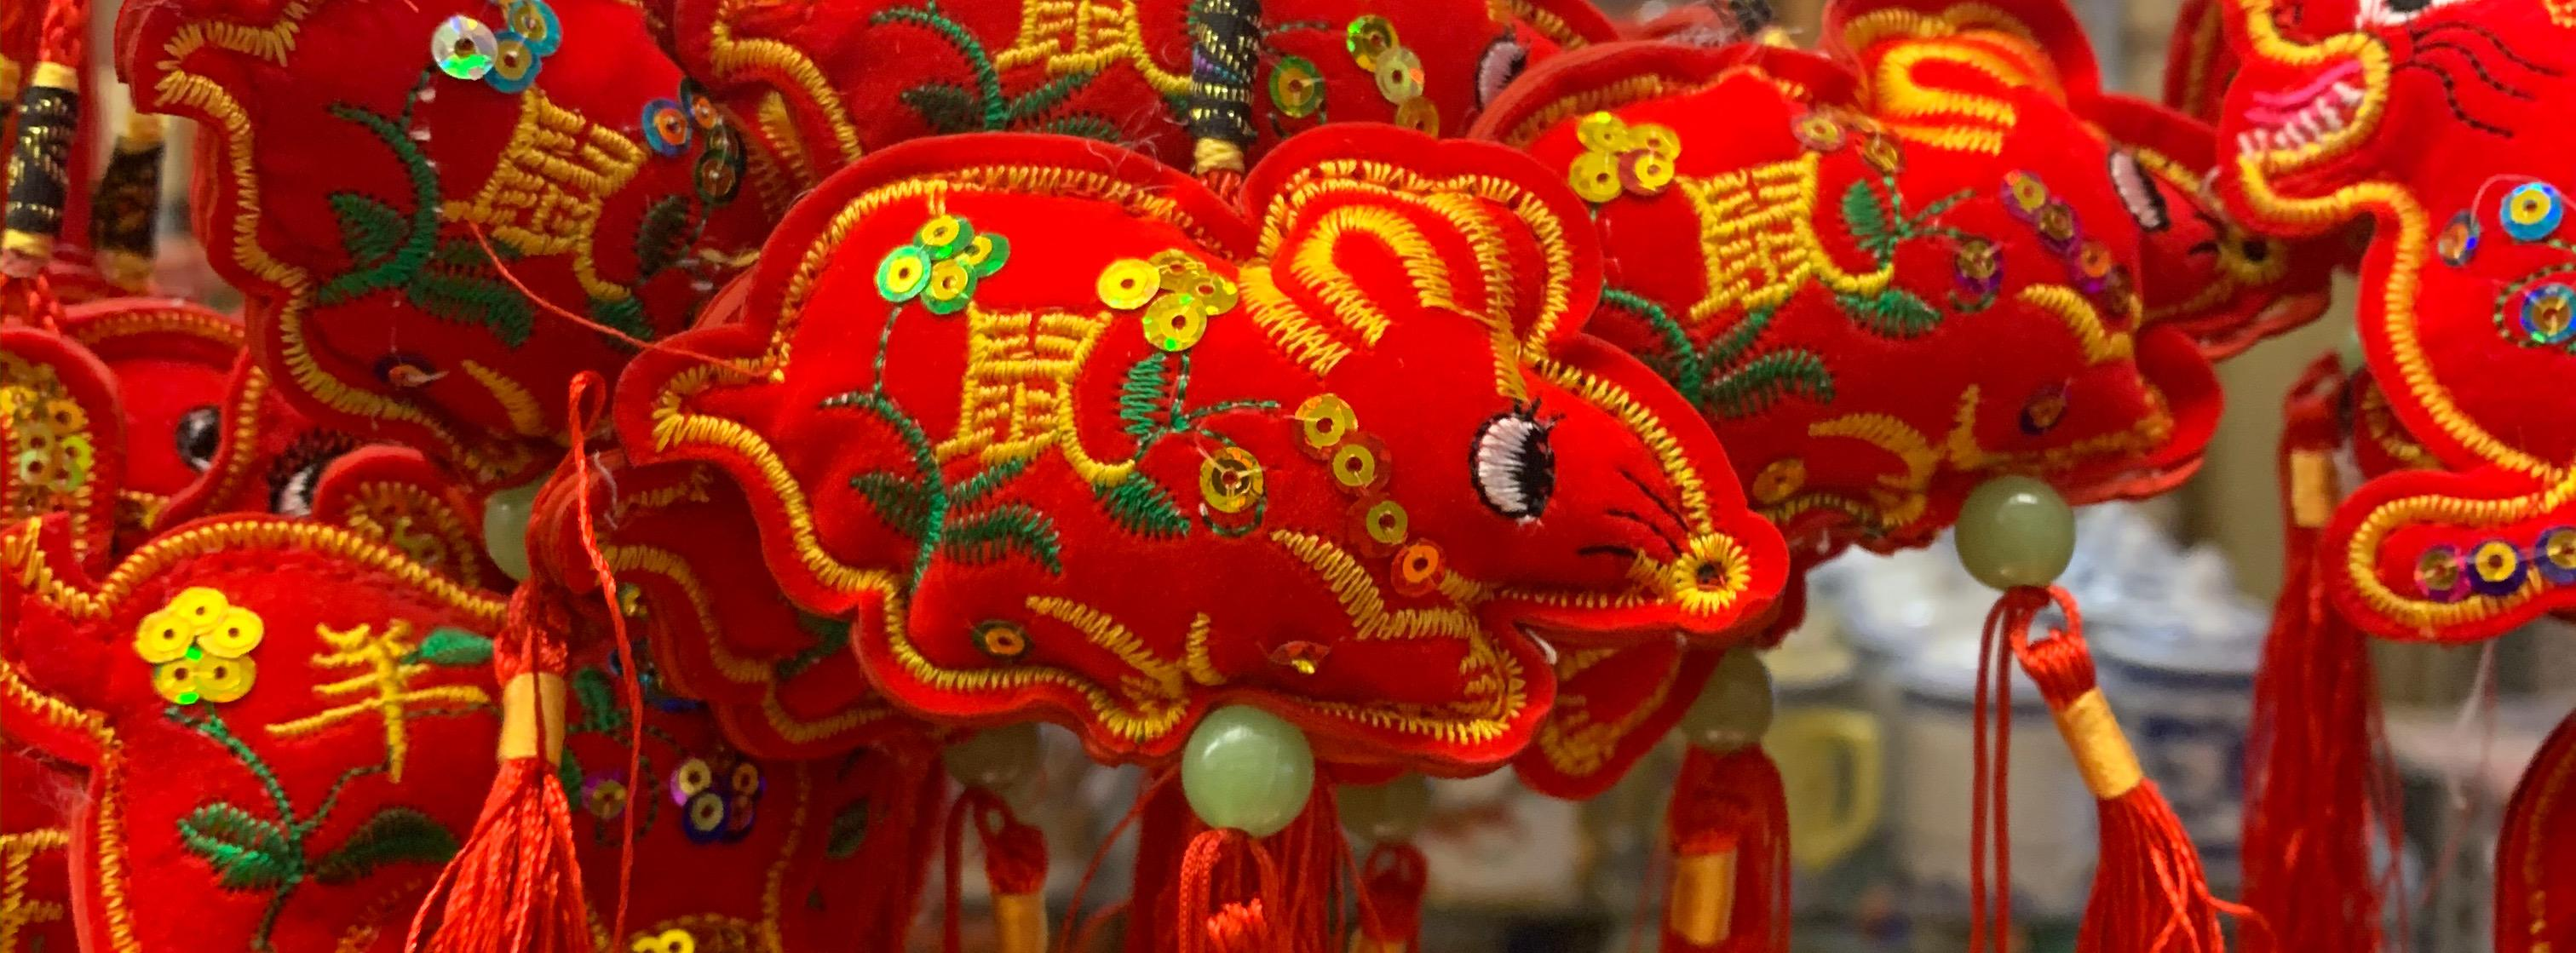 Chinese New Year Renewal Celebration-A New Year, A New Decade, A New You!